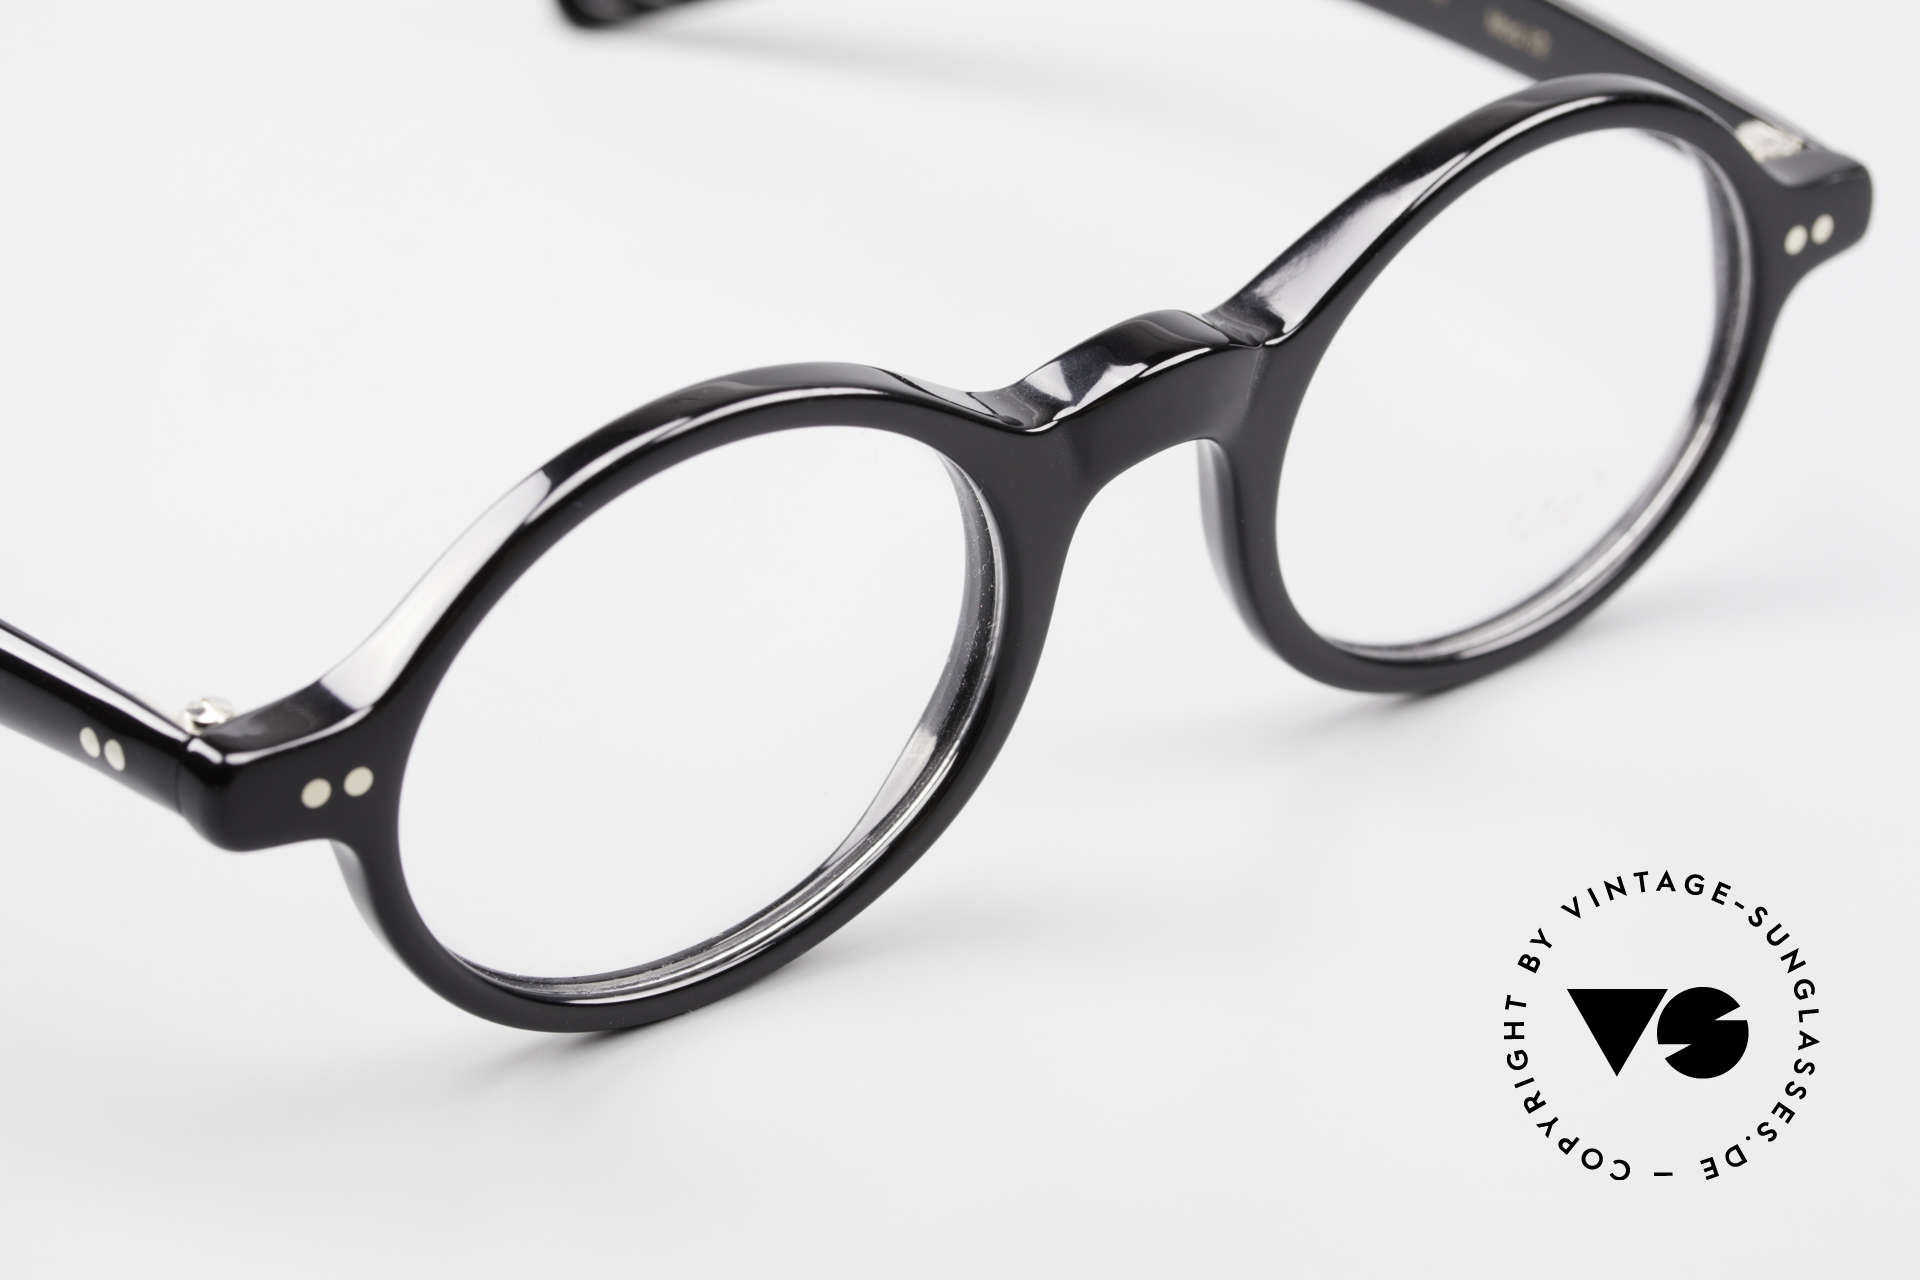 Lunor A52 Oval Eyeglasses Black Acetate, unworn (like all our beautiful Lunor frames & sunglasses), Made for Men and Women